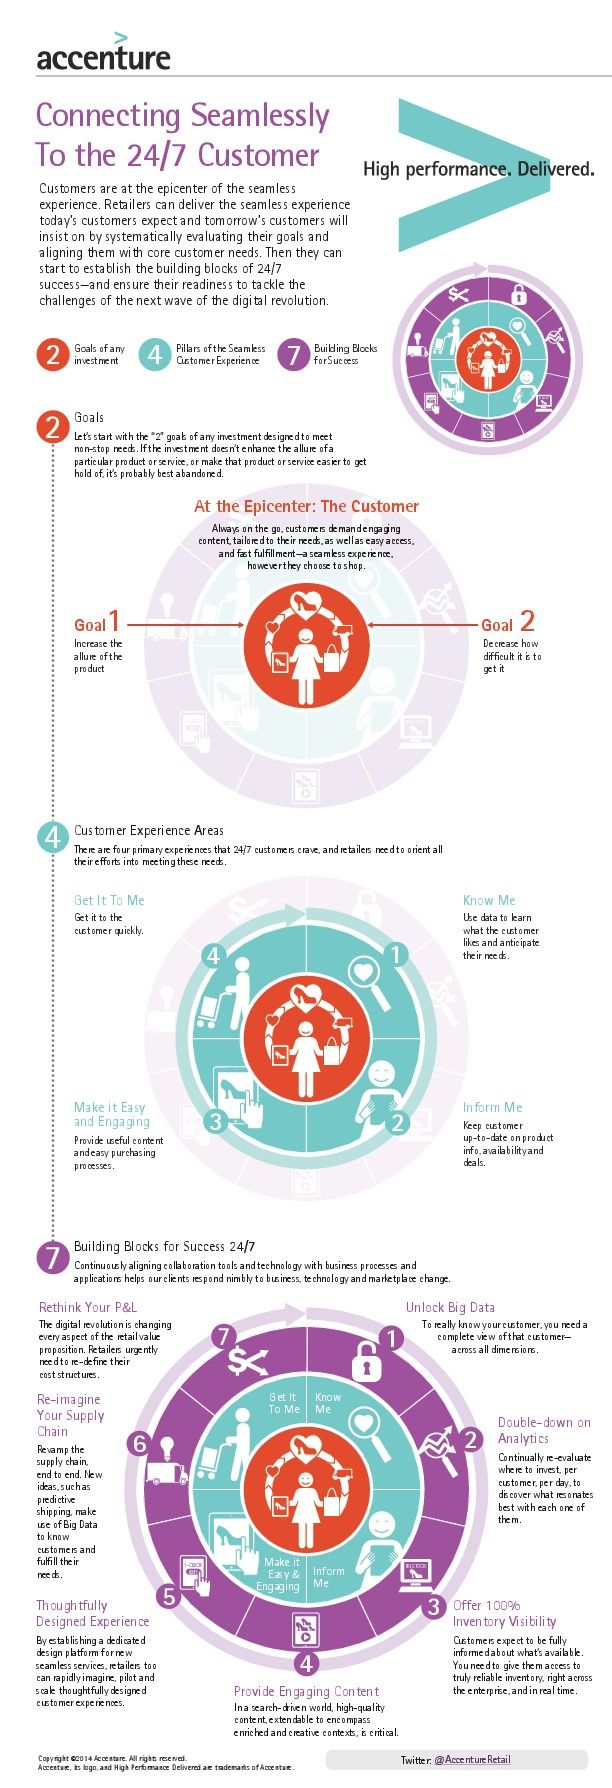 Digital #Customer #Experience Success  - #Infographic  Insight @Accenture